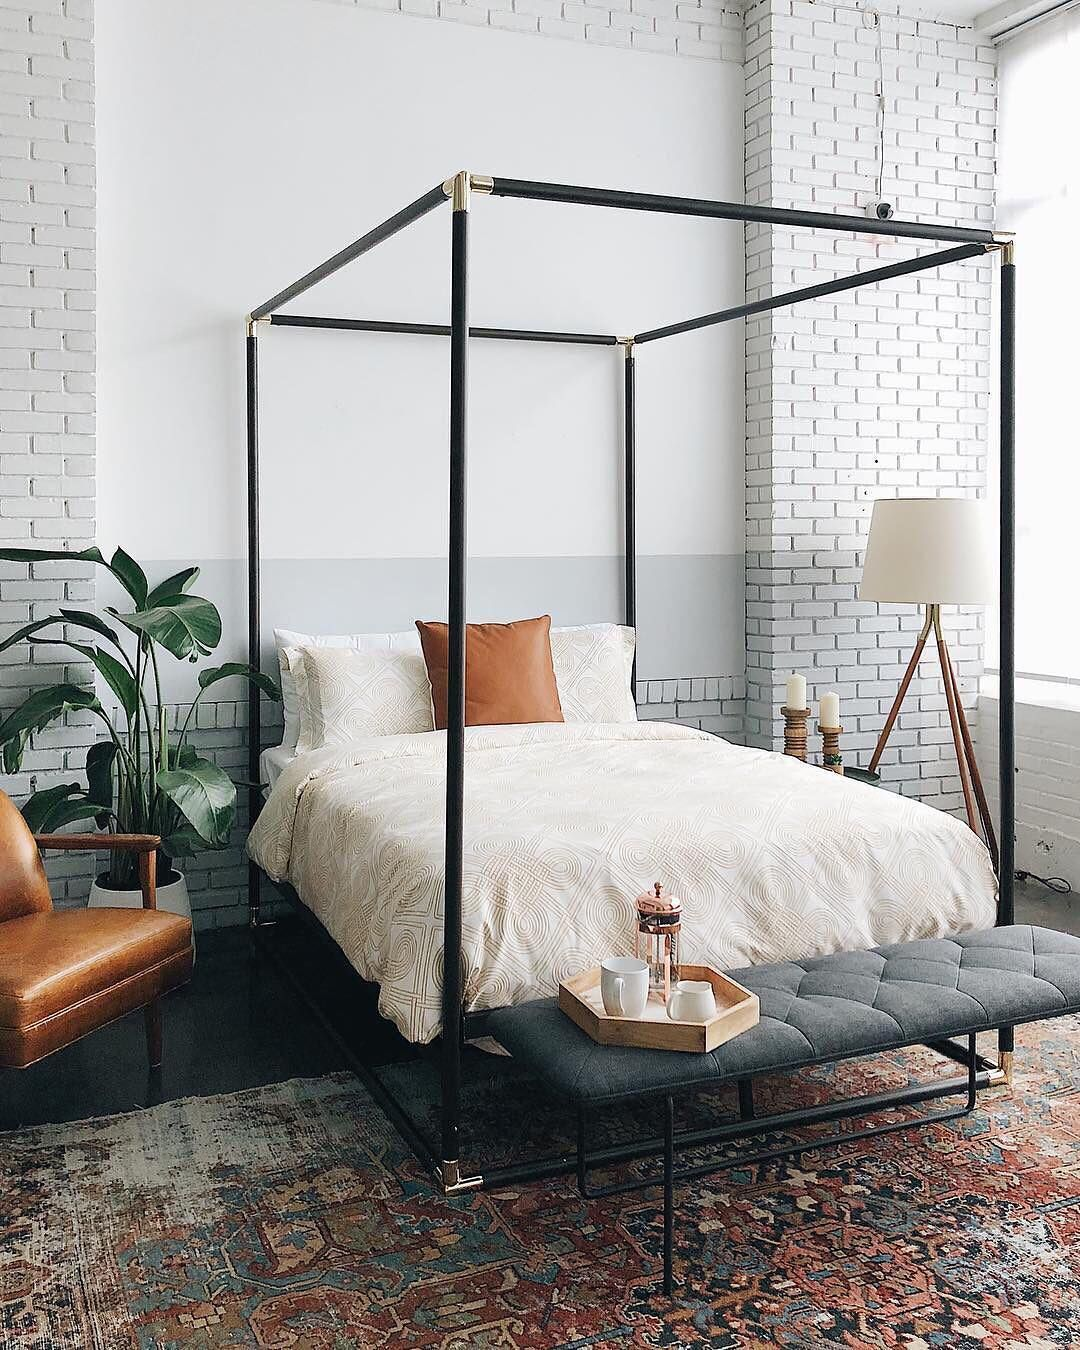 billie queen canopy bed on 13 8k likes 113 comments mydomaine mydomaine on instagram we would always press the snooze button if home decor bedroom bedroom design classic bedroom pinterest